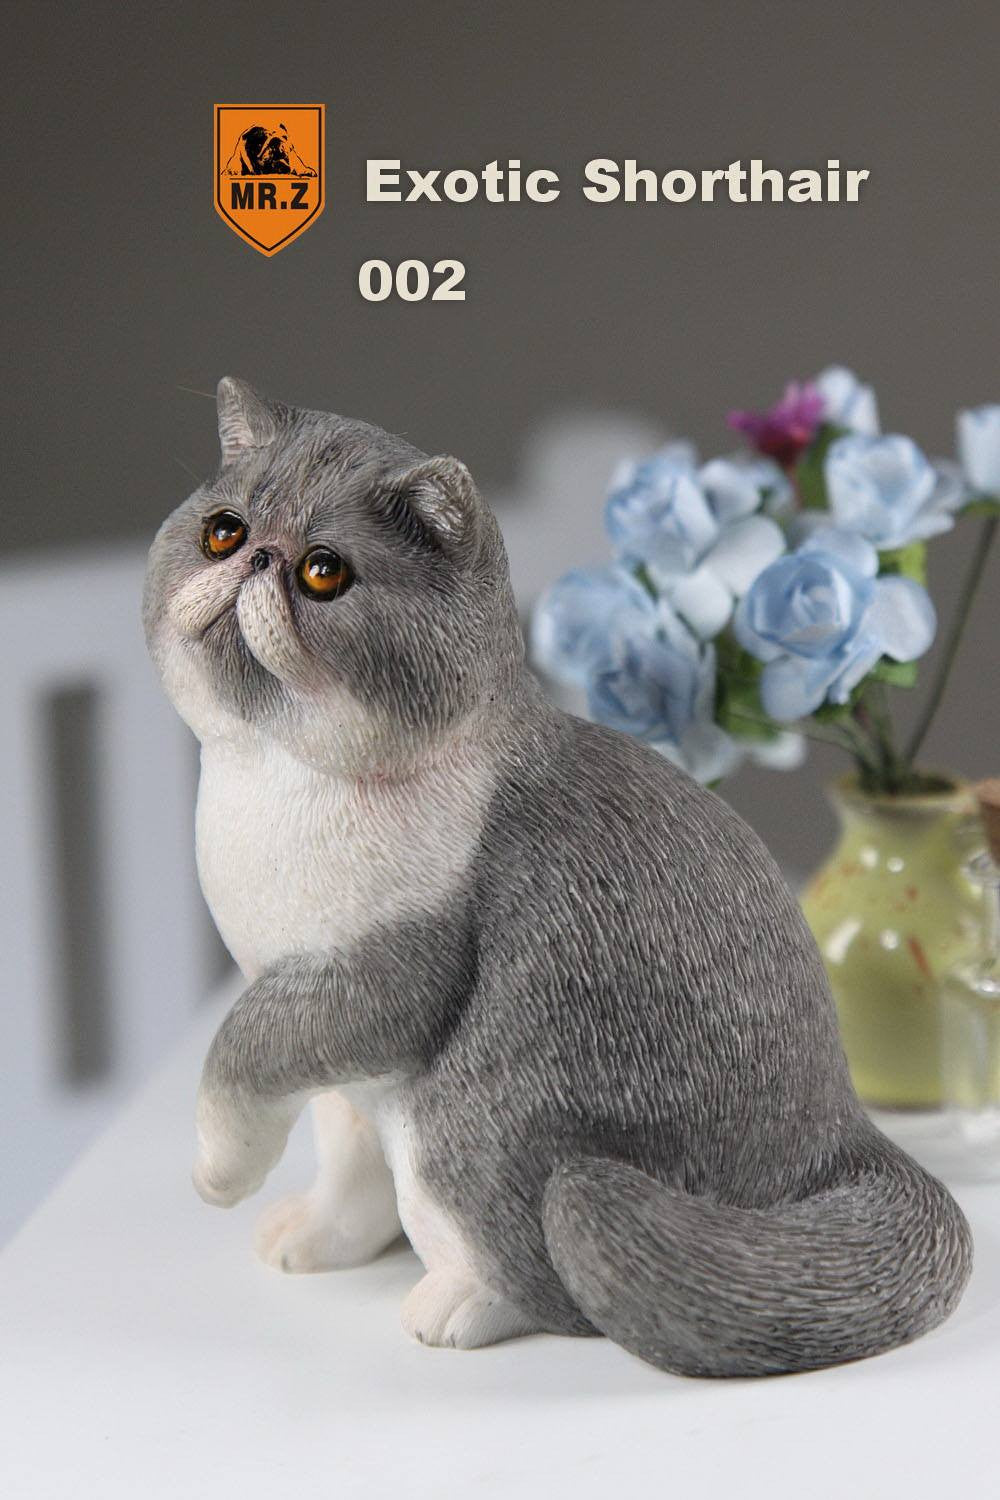 MR.Z - Real Animal Series No.8 - 1/6th Scale Exotic Shorthair Cat (Garfield) 001-005 - Marvelous Toys - 13